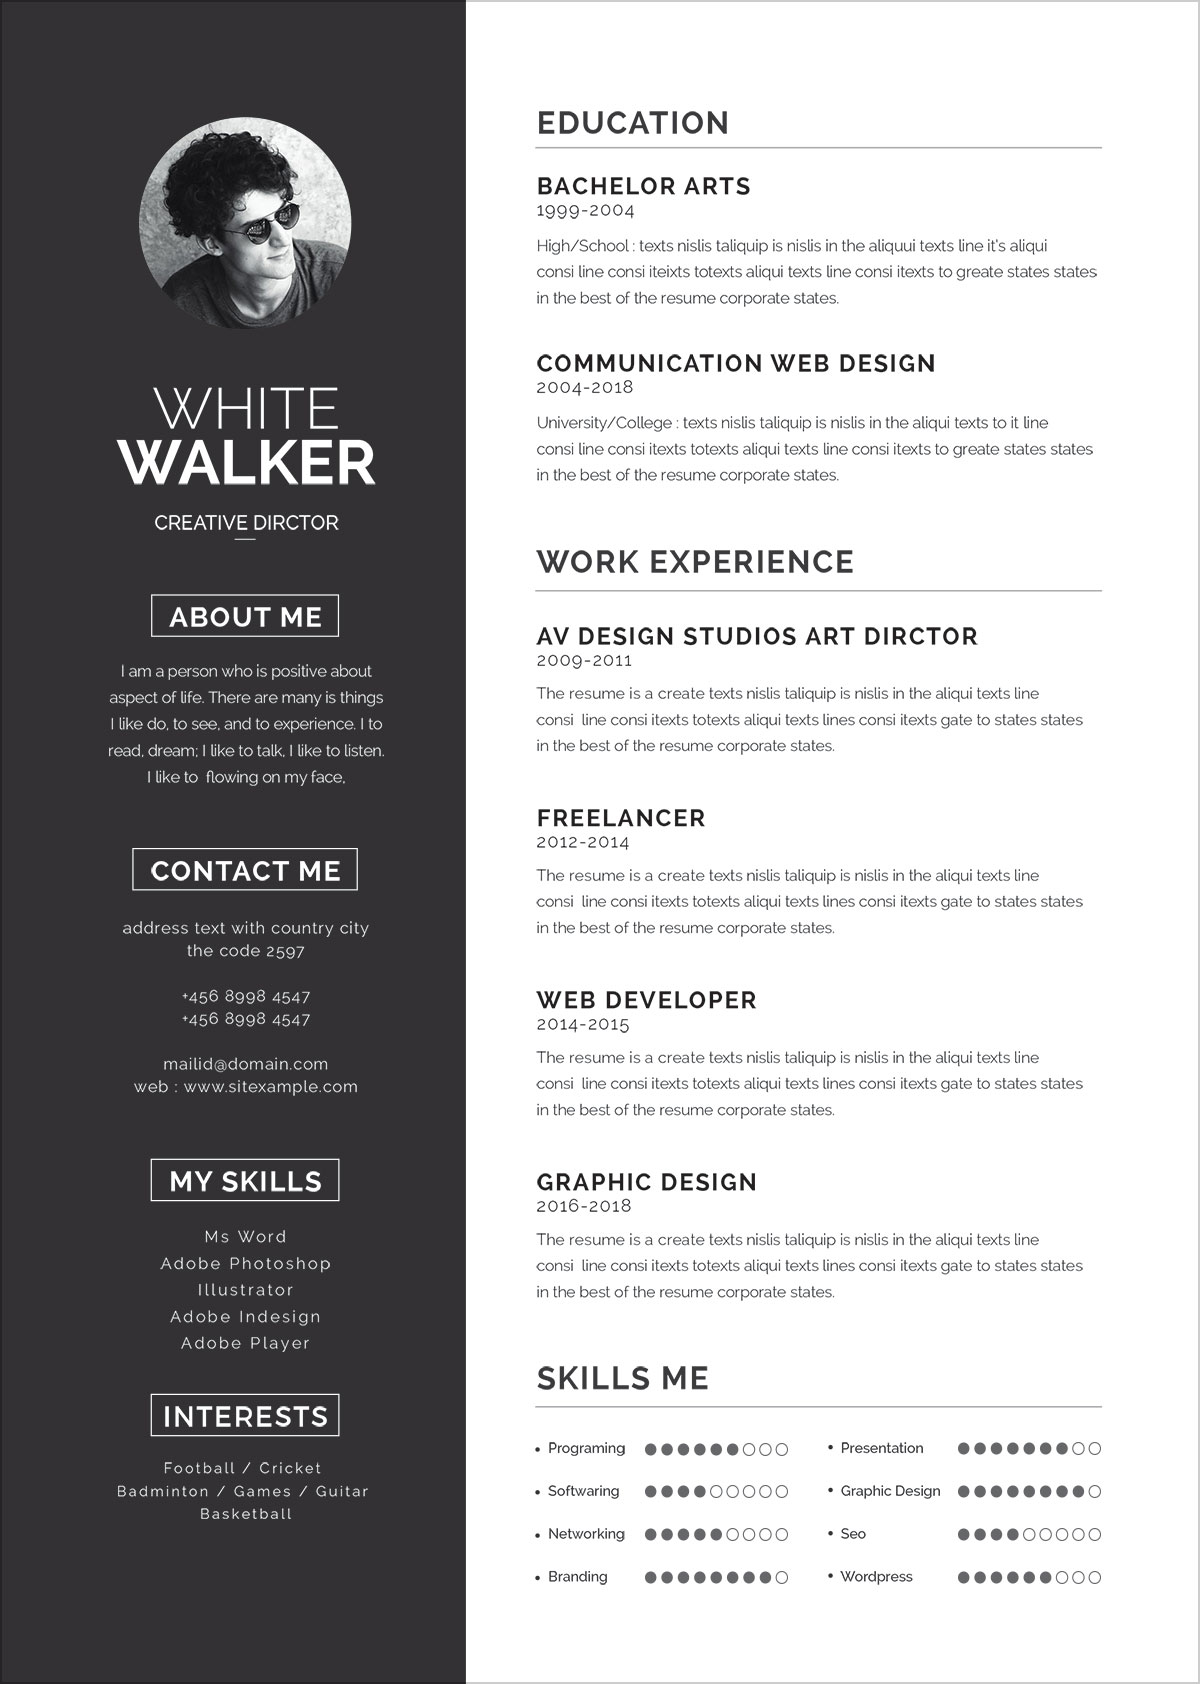 Free-Clean-Resume-Template-&-Cover-Letter-in-Word-PSD-PPTX-&-EPS- (5)